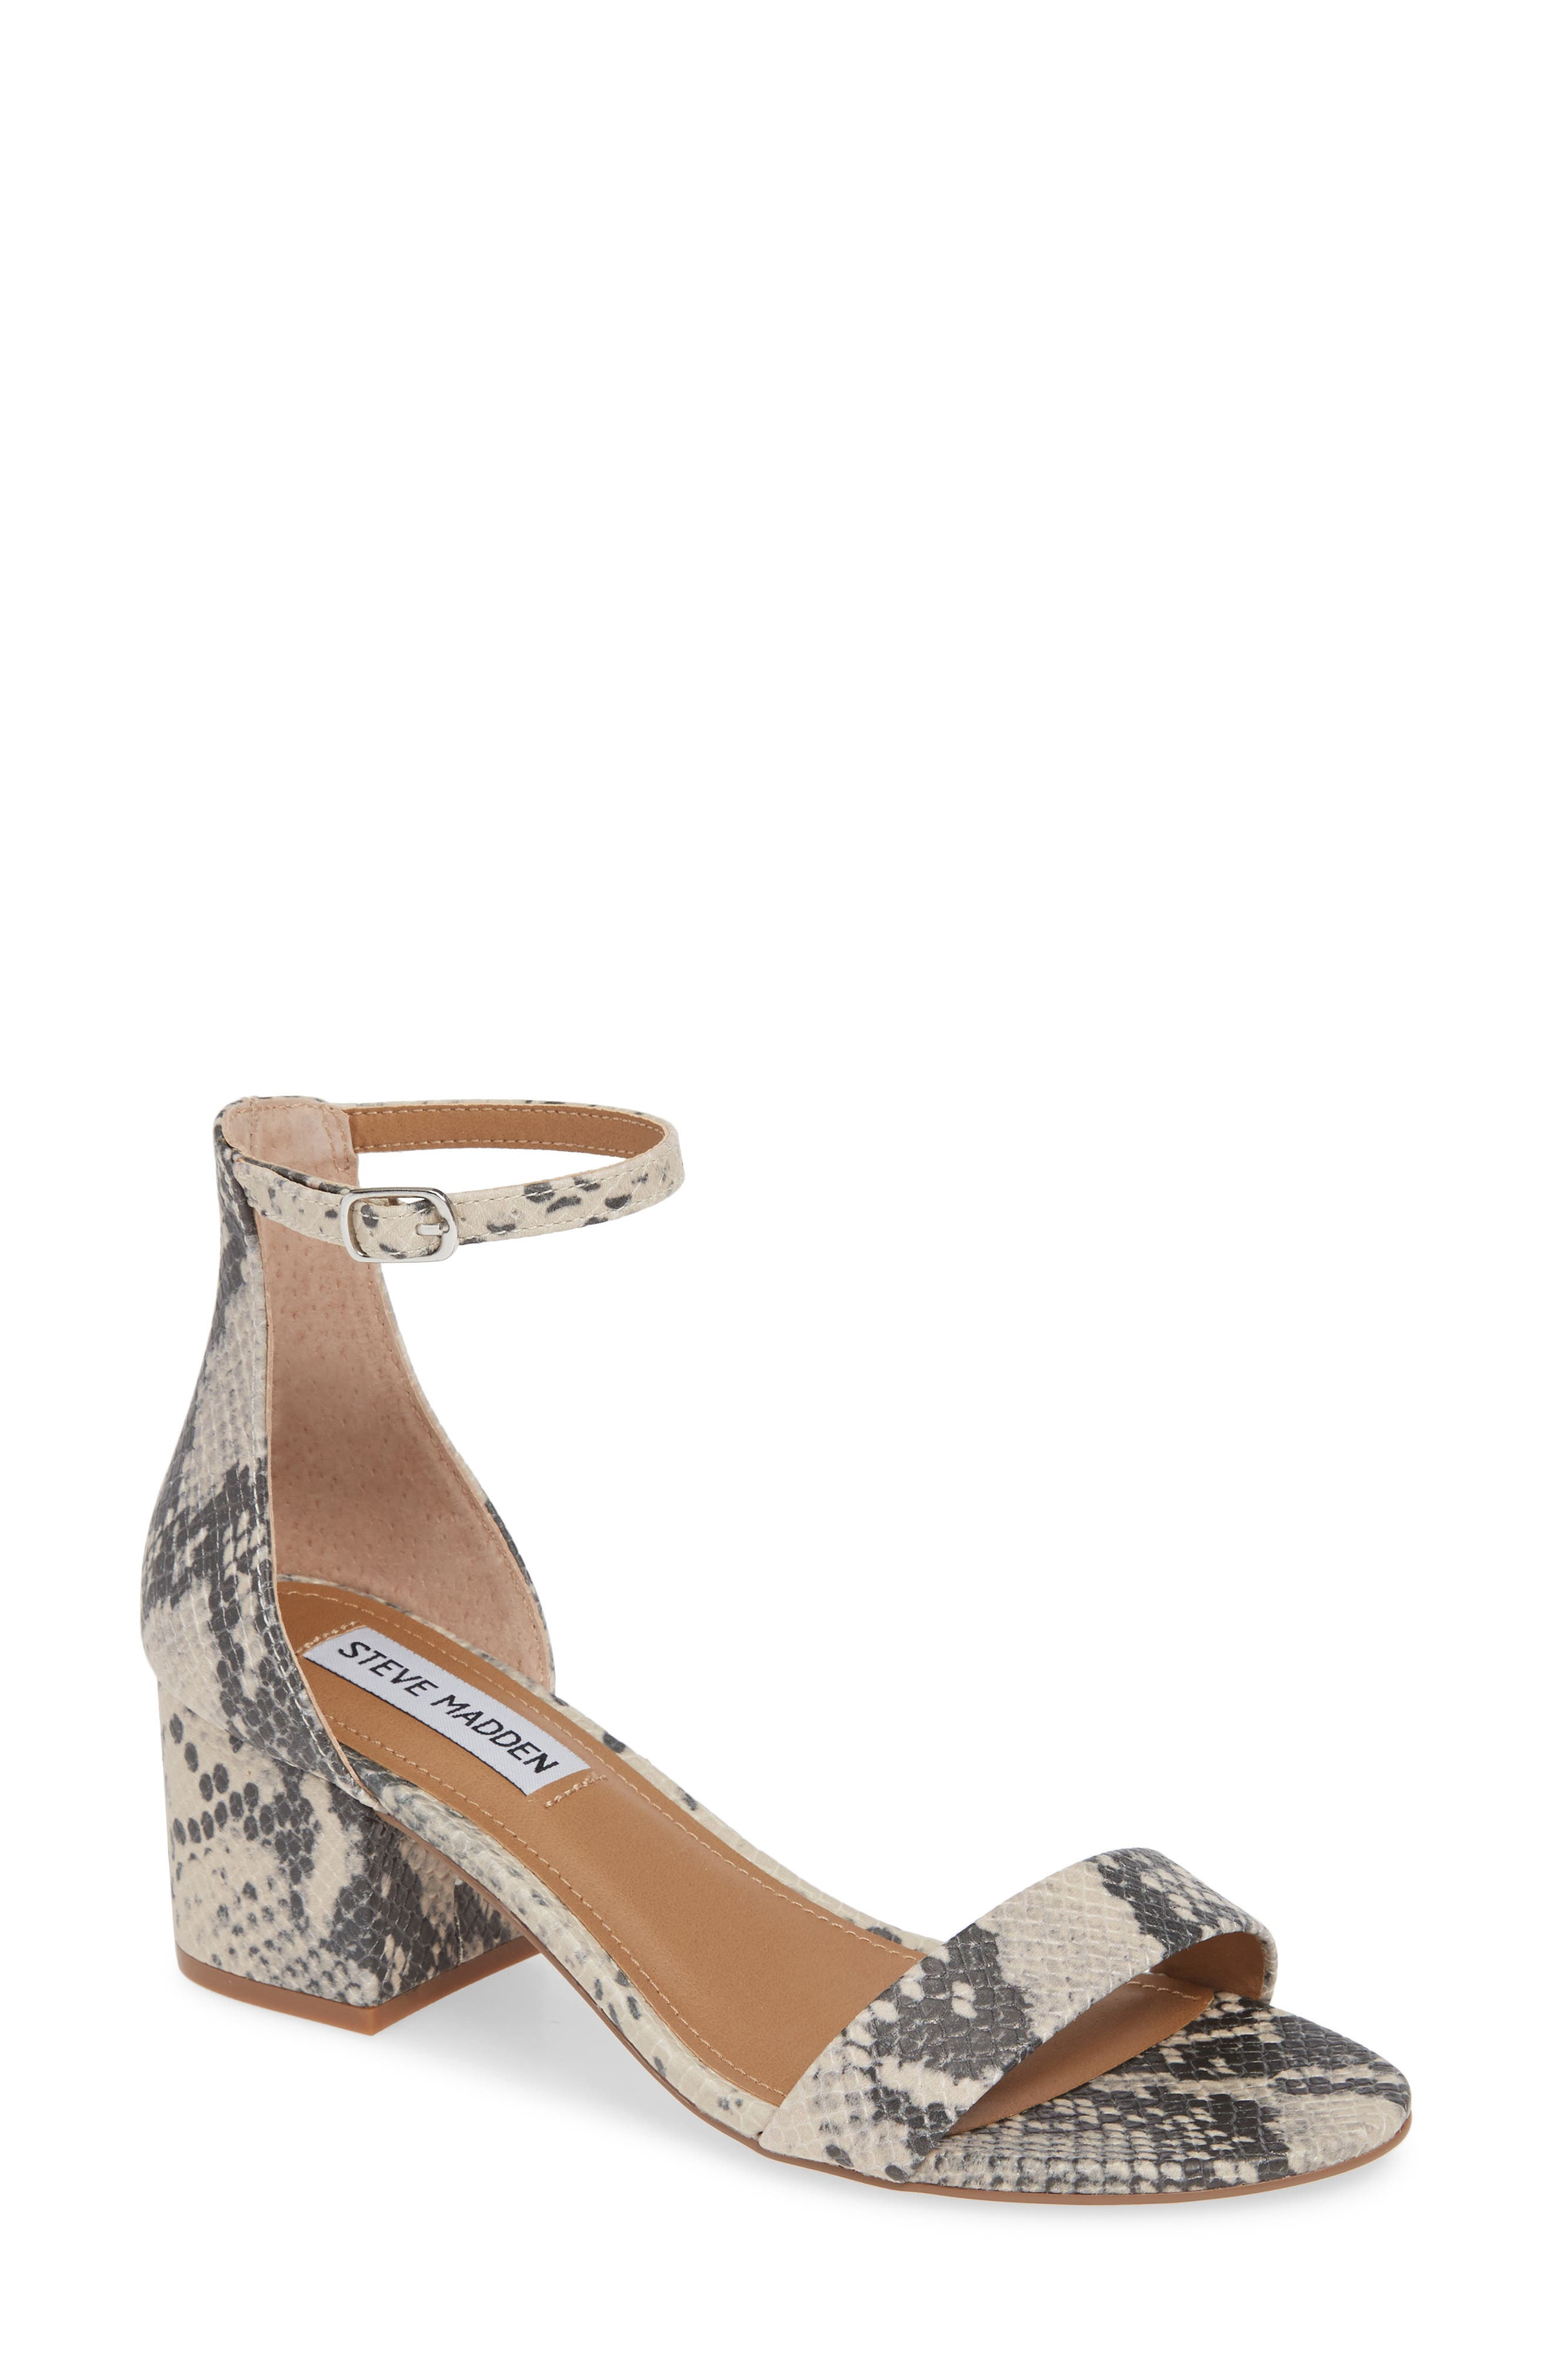 ,                             Irenee Ankle Strap Sandal,                             Main thumbnail 48, color,                             250